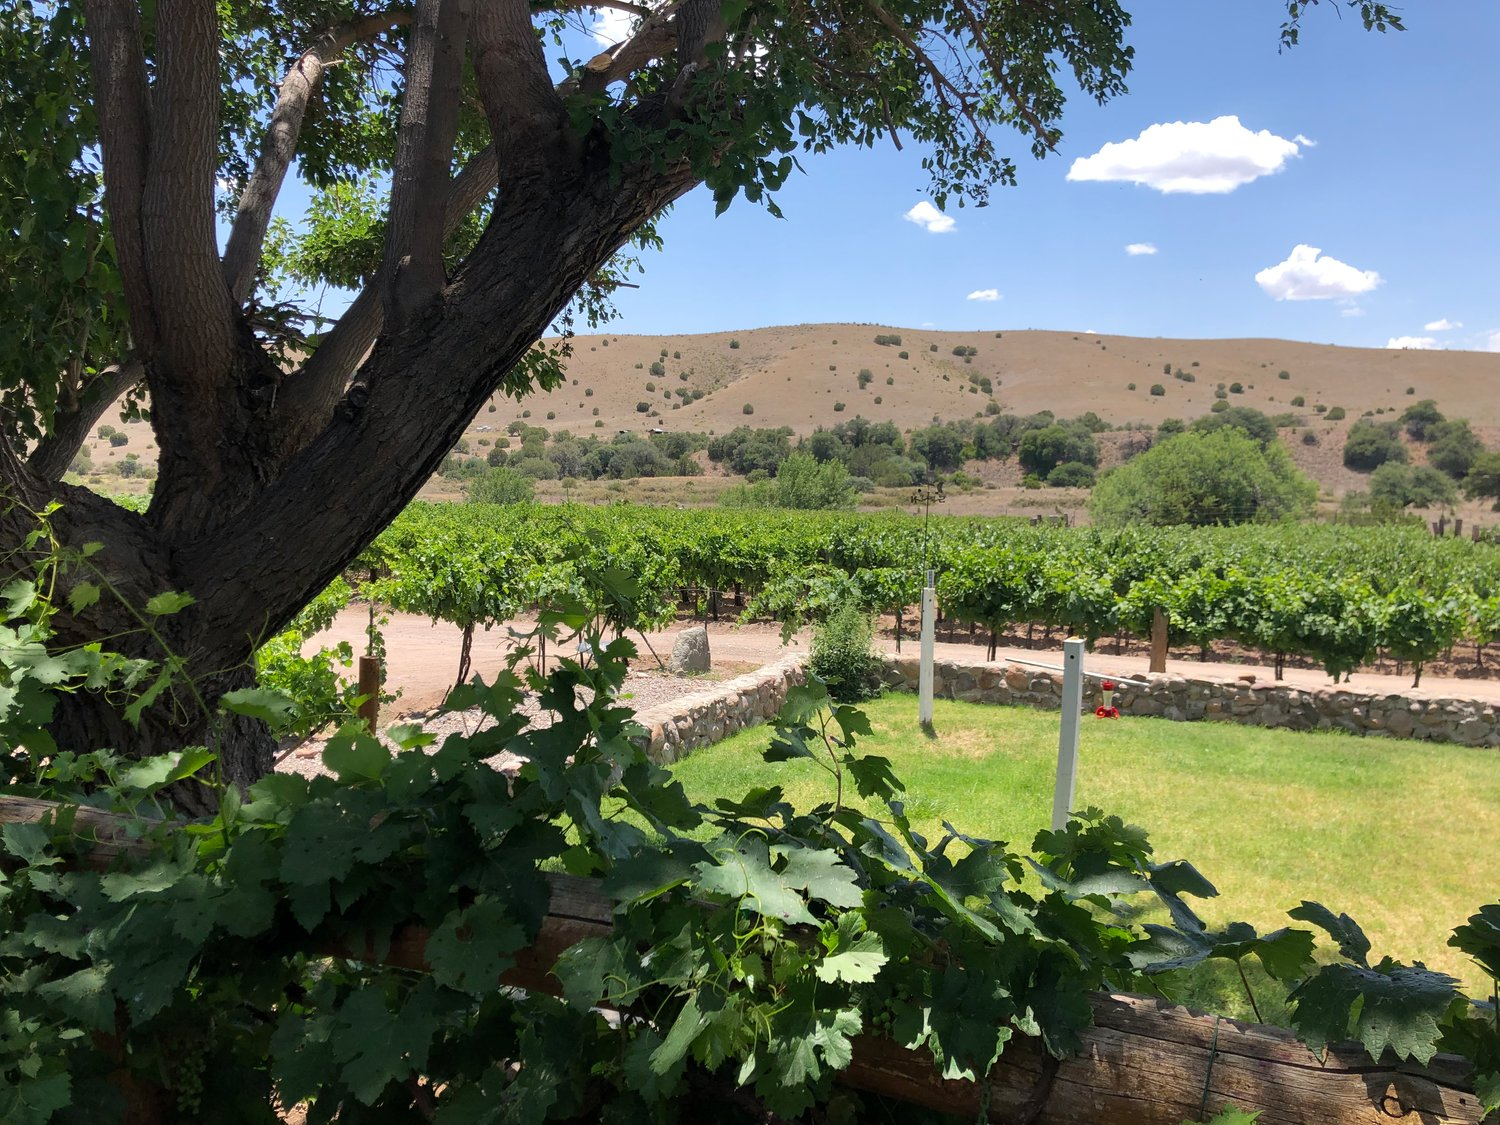 The fields of La Esperanza Vineyard and Winery spread across the desert valley, bringing a lush business to the land.